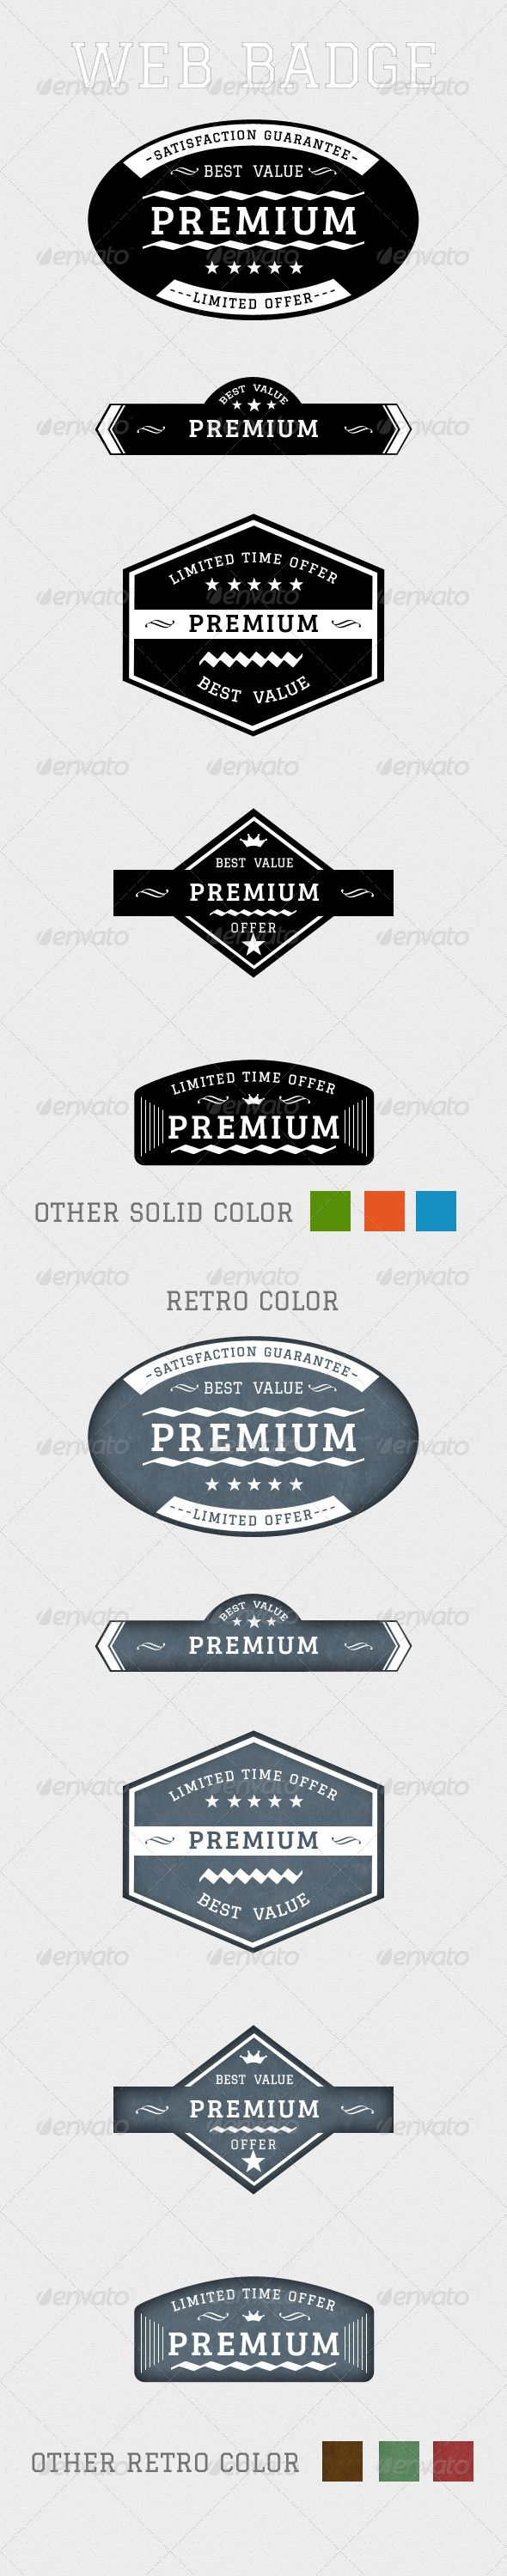 Prising Box Graphics  Designs   Template from GraphicRiver likewise 90 best Web Elements images on Pinterest   Font logo  Vector together with 90 best Web Elements images on Pinterest   Font logo  Vector also Slogans 1920s Pictures to Pin on Pinterest   PinsDaddy moreover Slogans 1920s Pictures to Pin on Pinterest   PinsDaddy in addition 90 best Web Elements images on Pinterest   Font logo  Vector moreover Slogans 1920s Pictures to Pin on Pinterest   PinsDaddy as well 90 best Web Elements images on Pinterest   Font logo  Vector additionally Slogans 1920s Pictures to Pin on Pinterest   PinsDaddy additionally Slogans 1920s Pictures to Pin on Pinterest   PinsDaddy additionally Slogans 1920s Pictures to Pin on Pinterest   PinsDaddy. on 1100x3583